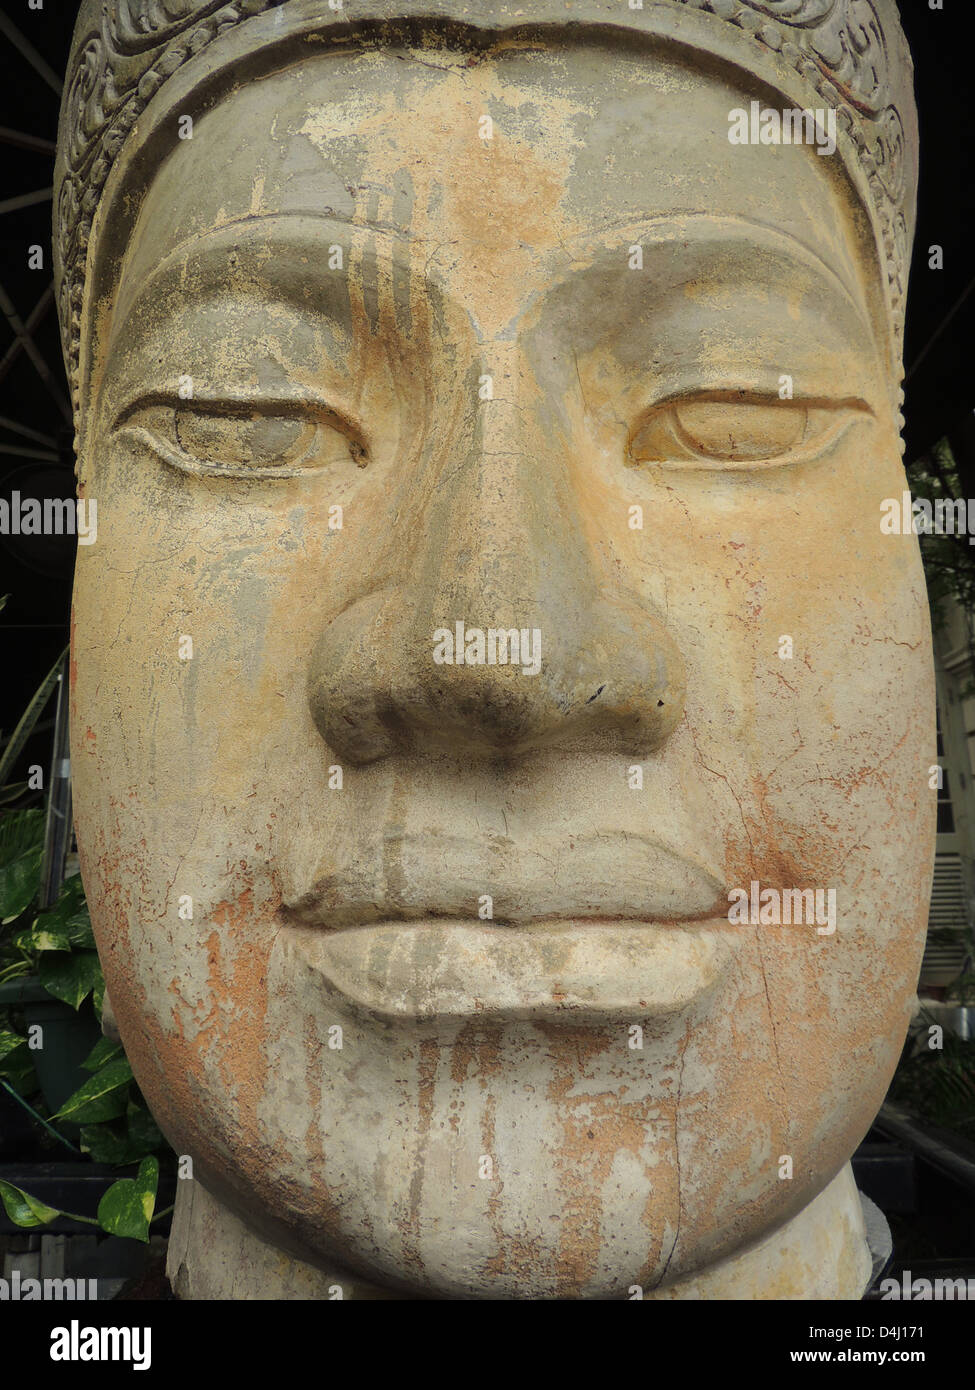 ASIATIC FACE sculptures outside a Singapore restaurant. Photo Tony Gale - Stock Image